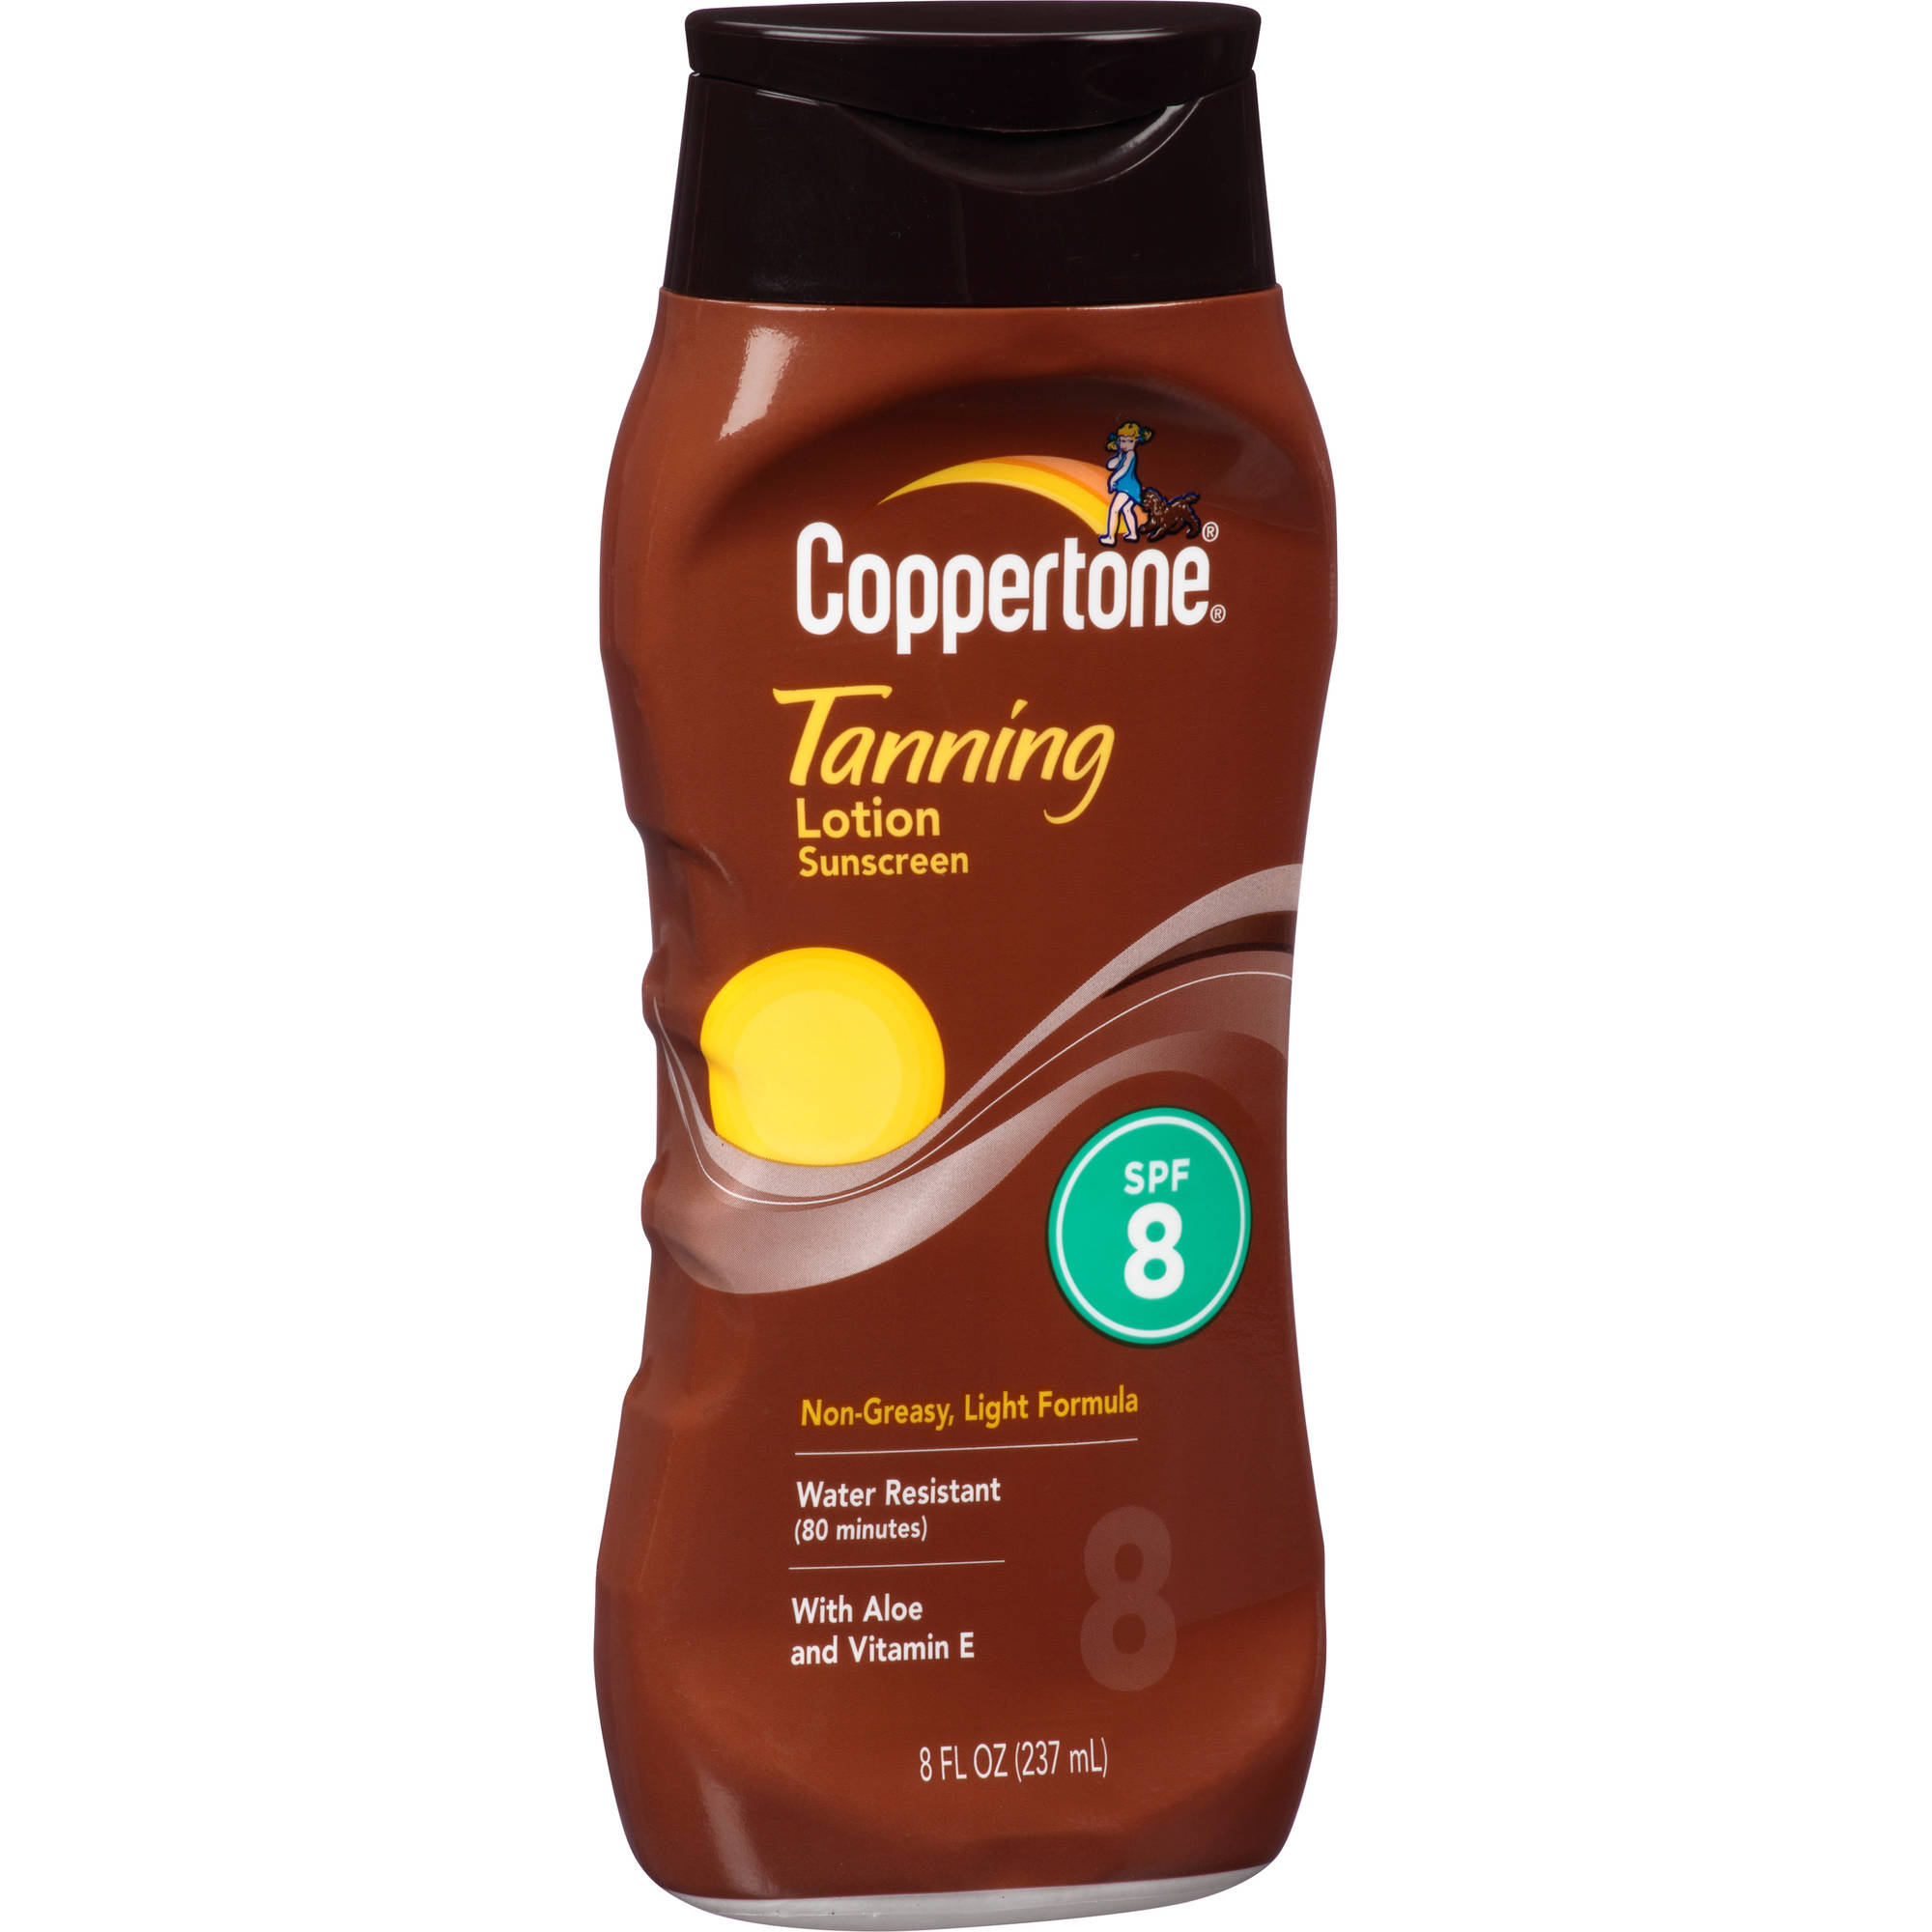 Coppertone Tanning Lotion Sunscreen, SPF 8, 8 fl oz